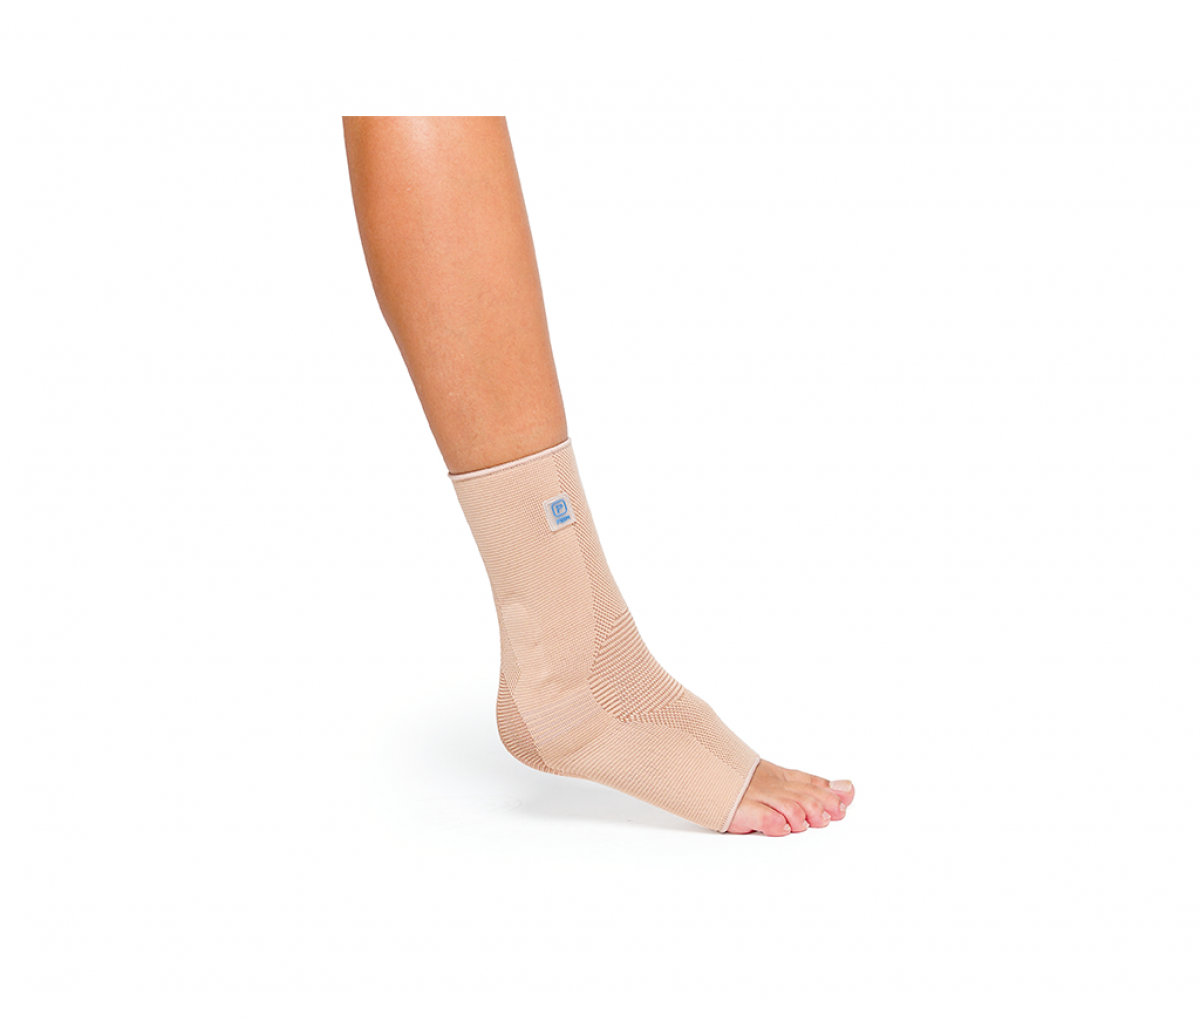 AQTIVO ANKLE BRACE WITH SILICONE INSERT - S P705BG